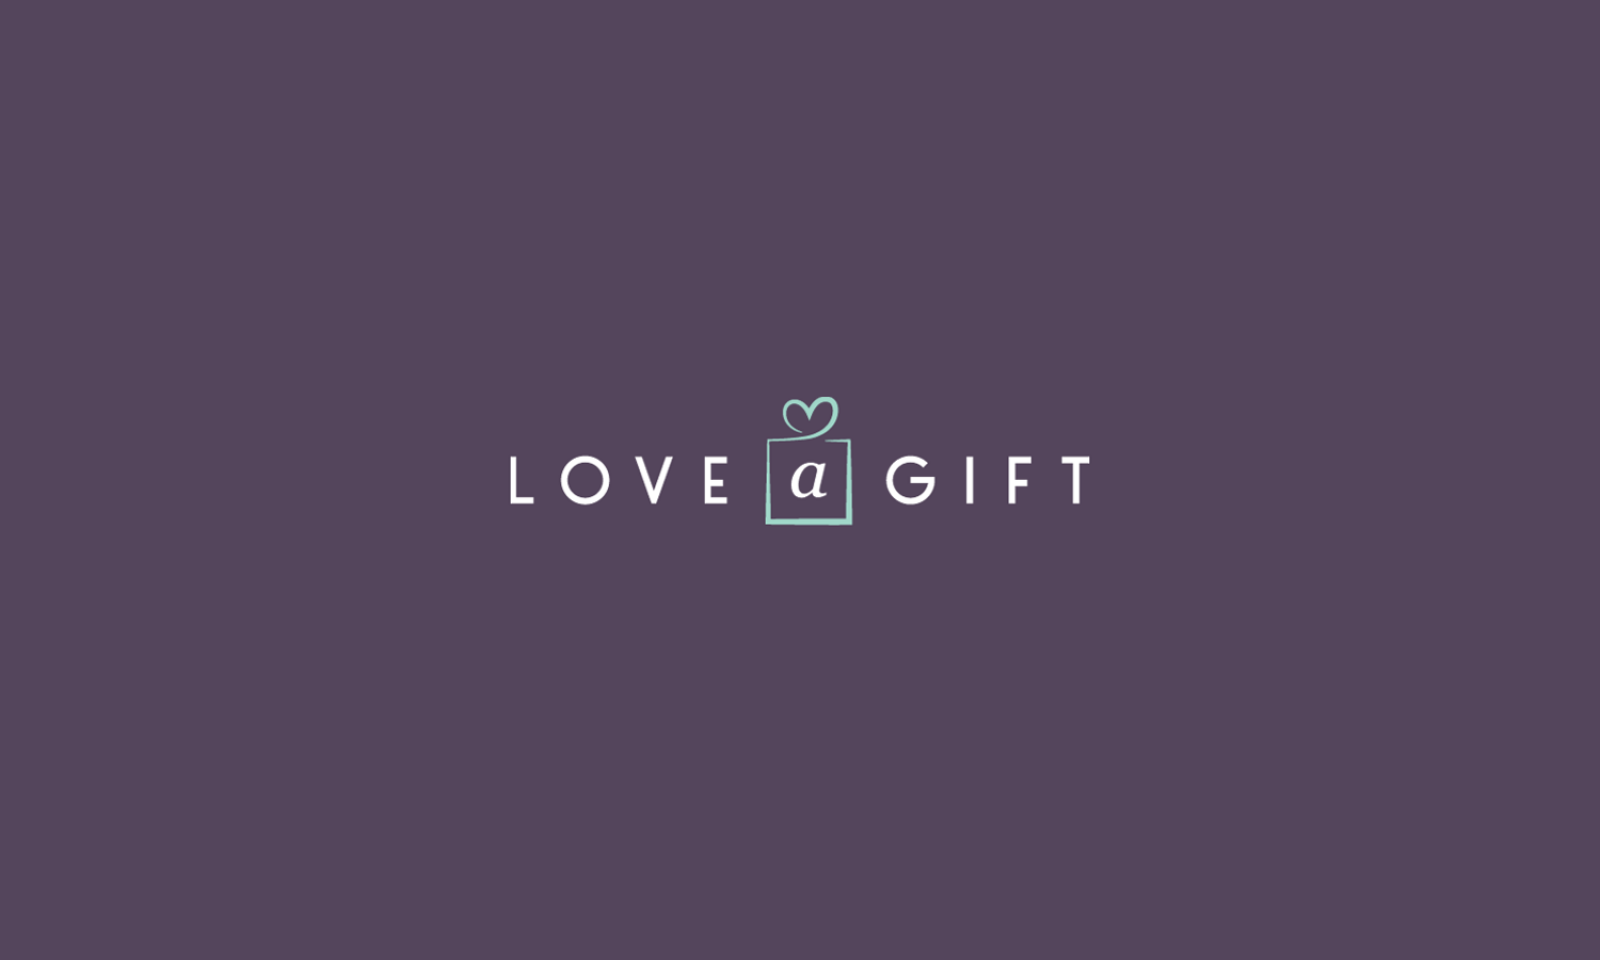 logo--love-a-gift-corporate-identity-agency-graphic-design-canterbury.png